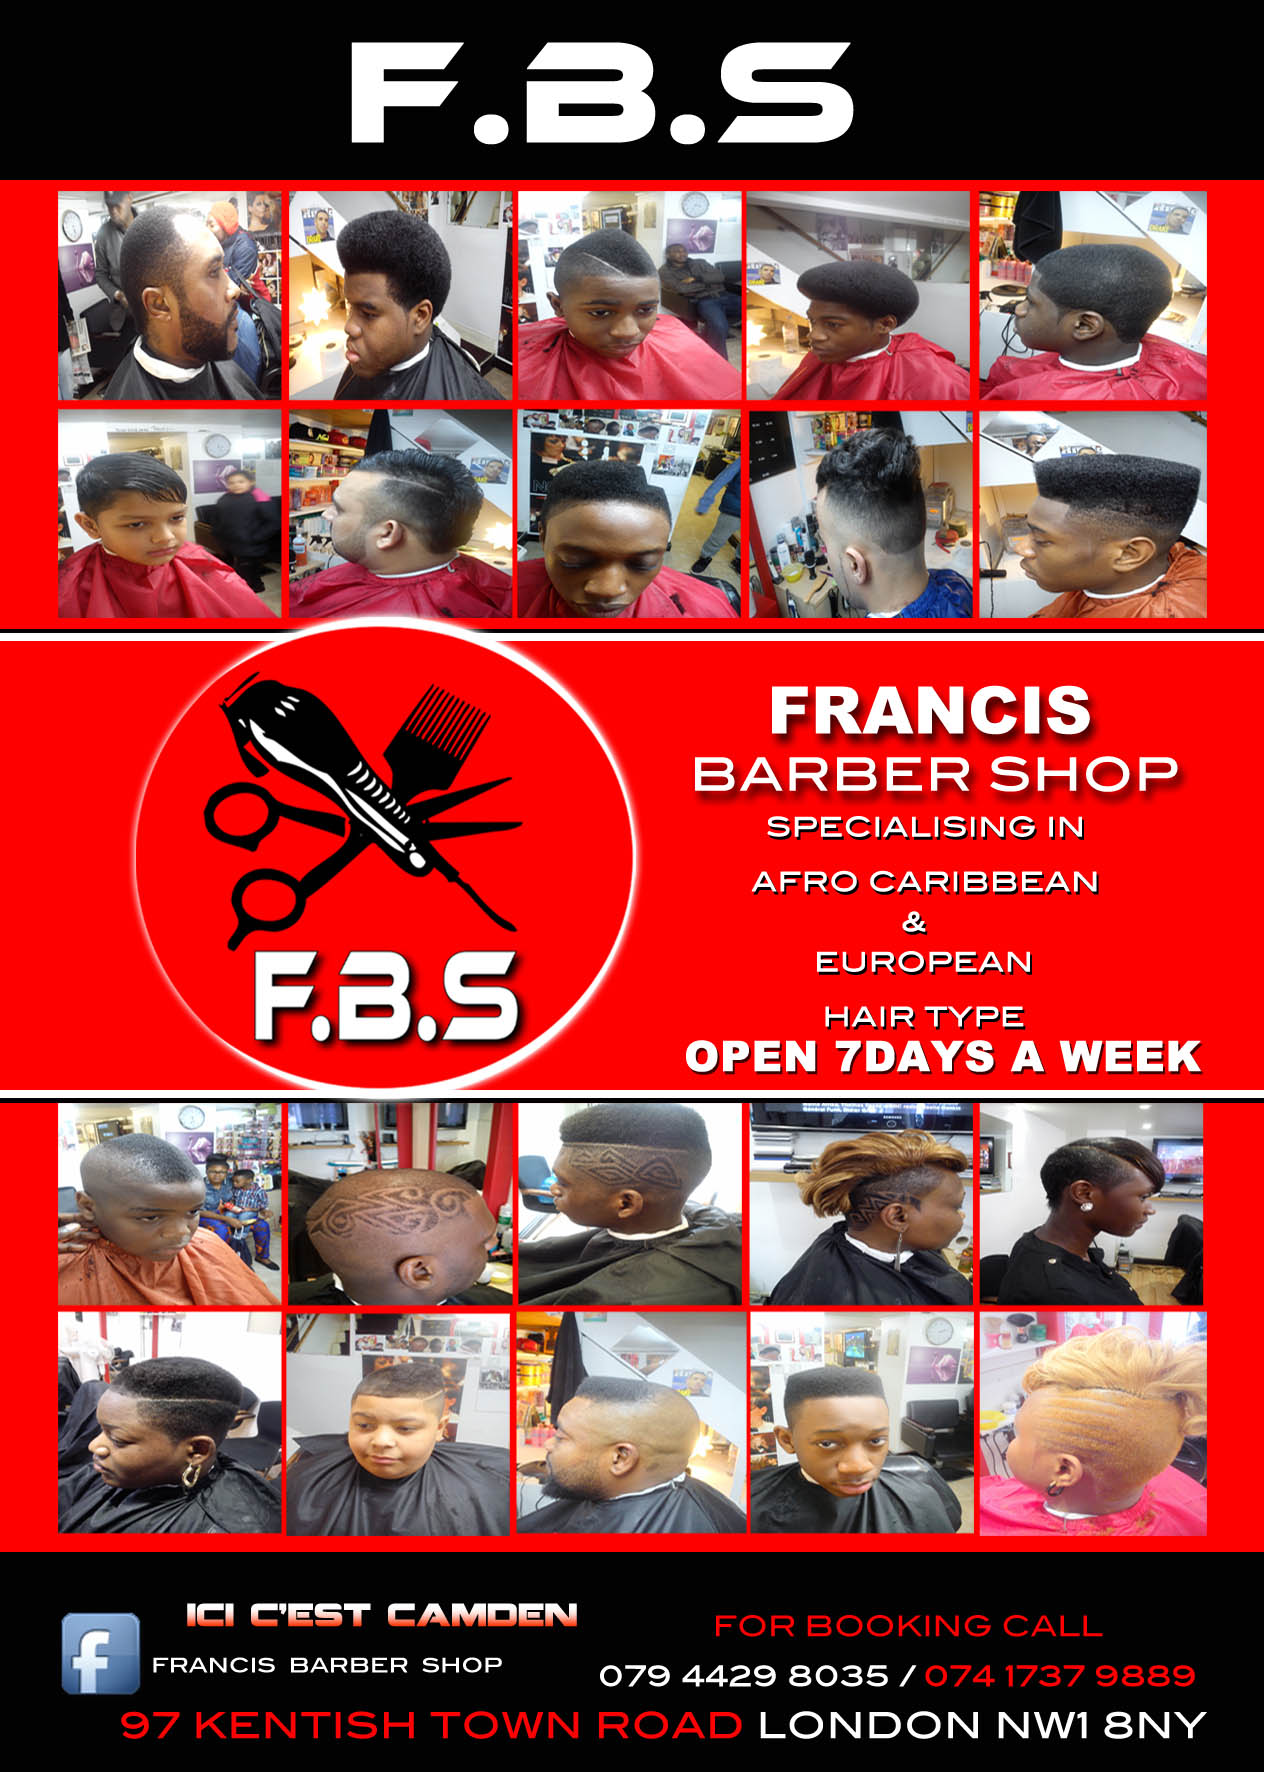 Francis Barber Shop